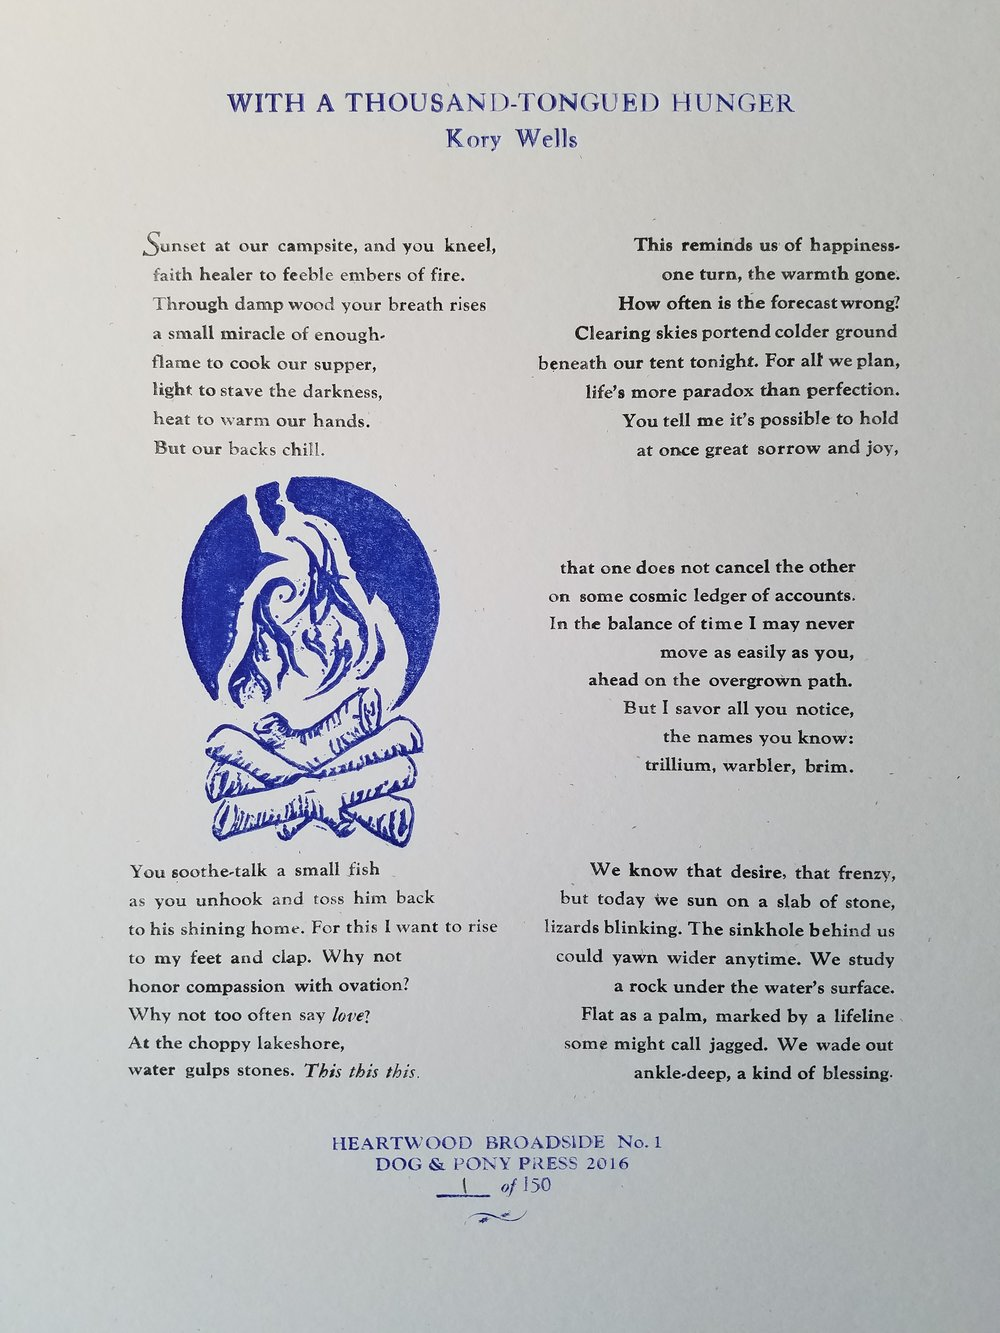 Broadside created by Diane Radford, of Dog & Pony Press. Paper is 8 1/2 by 11 French Paper Muscletone 140 lb. Speckletone Starch White. The body of the piece is set in Goudy 10 point and title is in Caslon, printed on a Chandler and Price Old Style treadle operated letterpress.